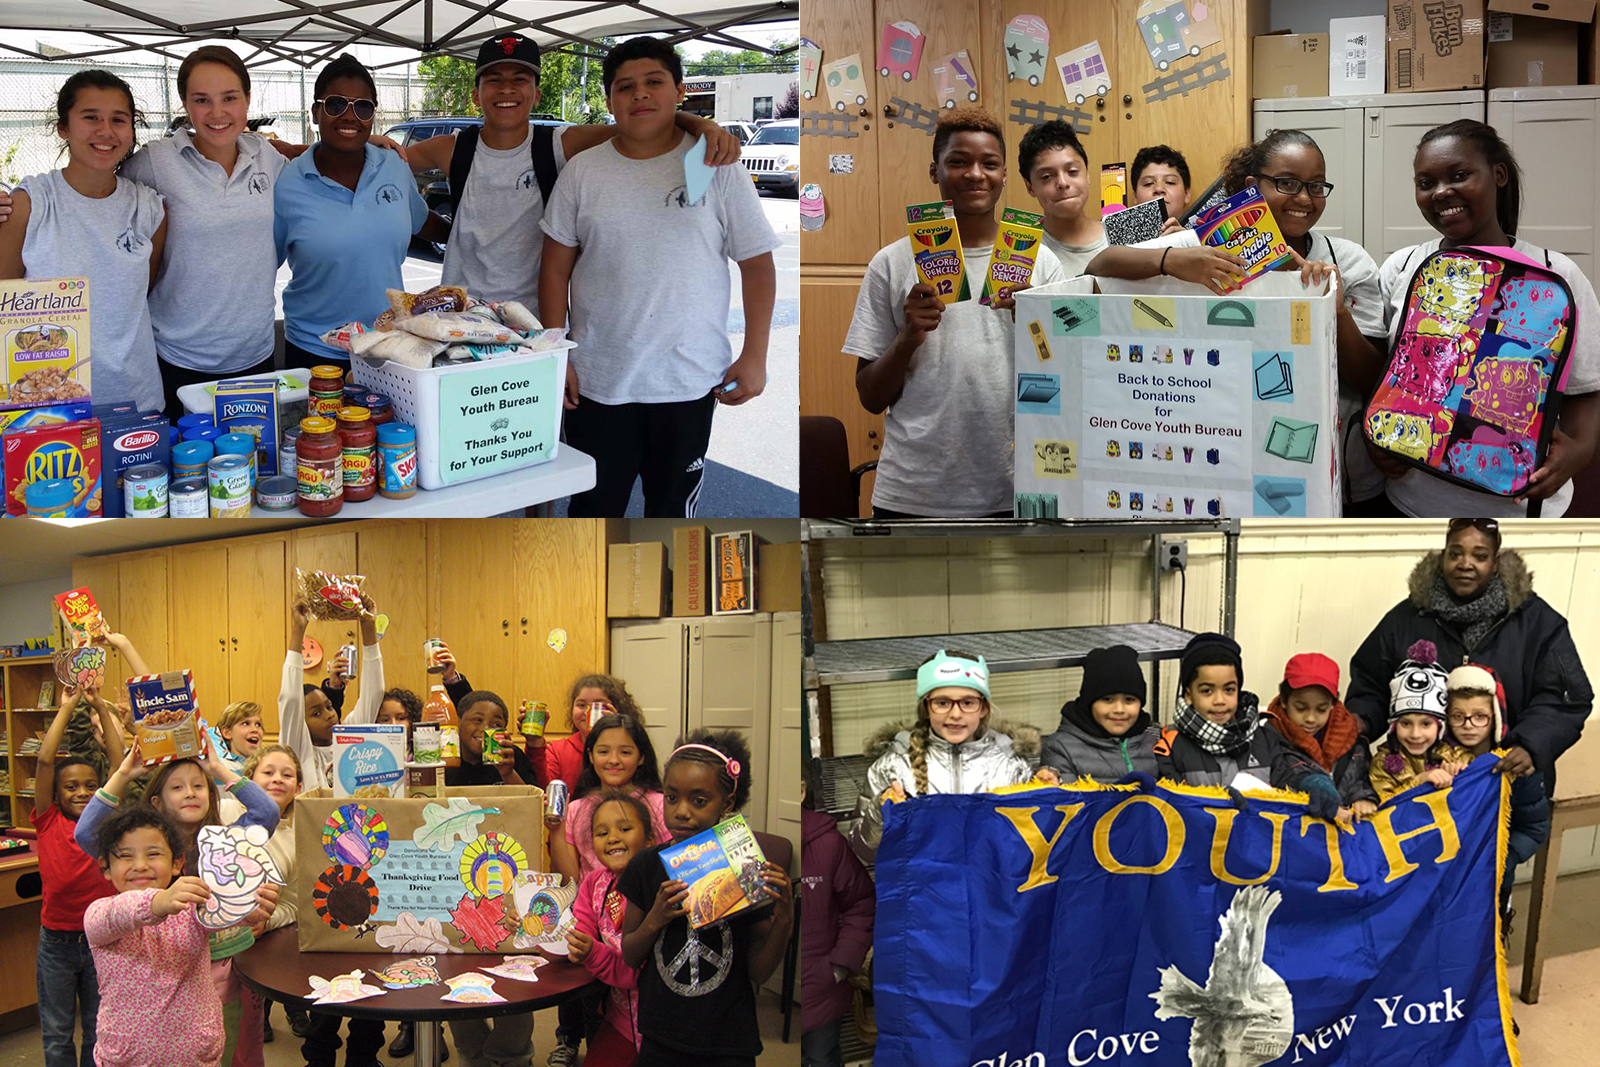 CHARITY OF THE MONTH: City of Glen Cove Youth Bureau